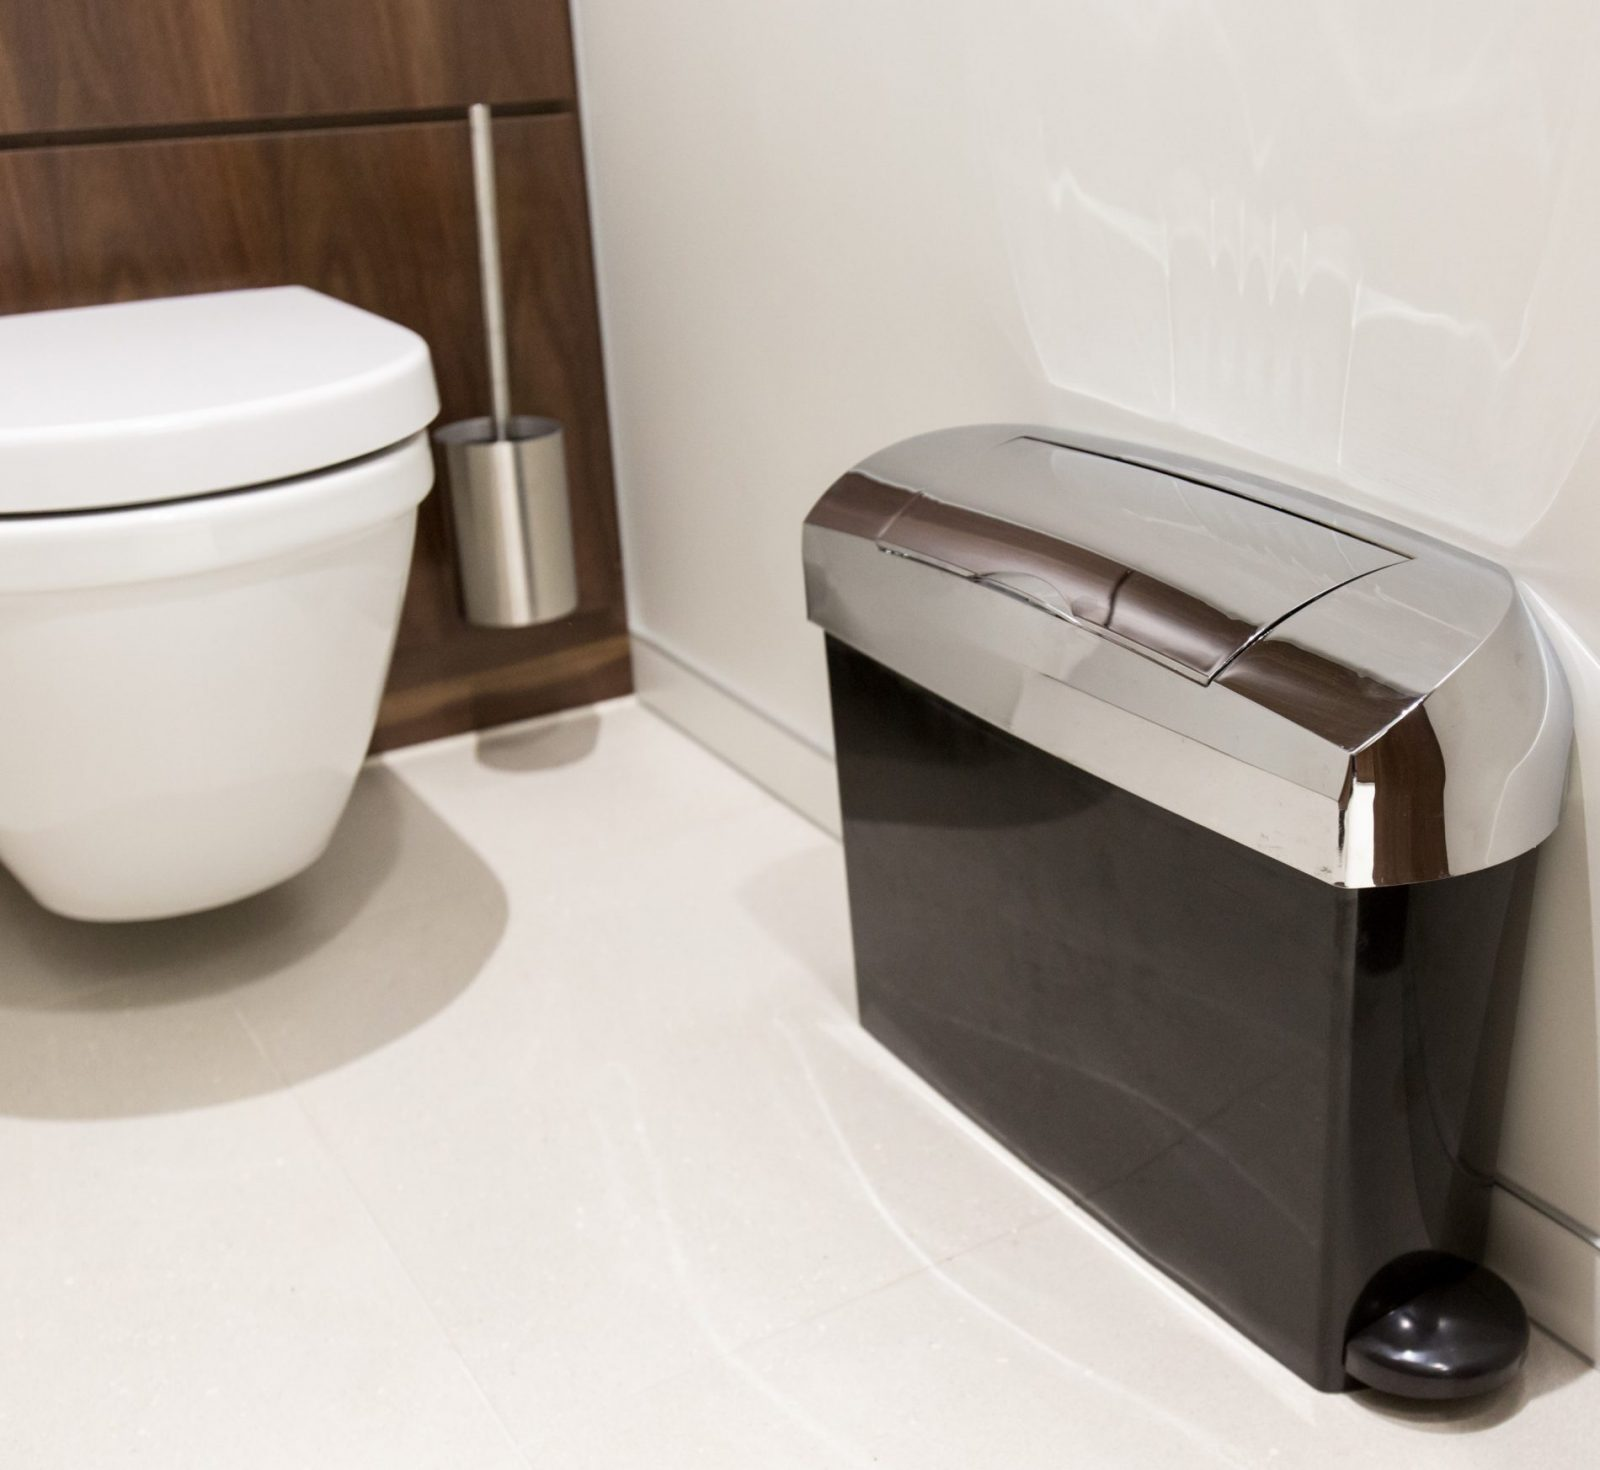 Sanitary bins for offices